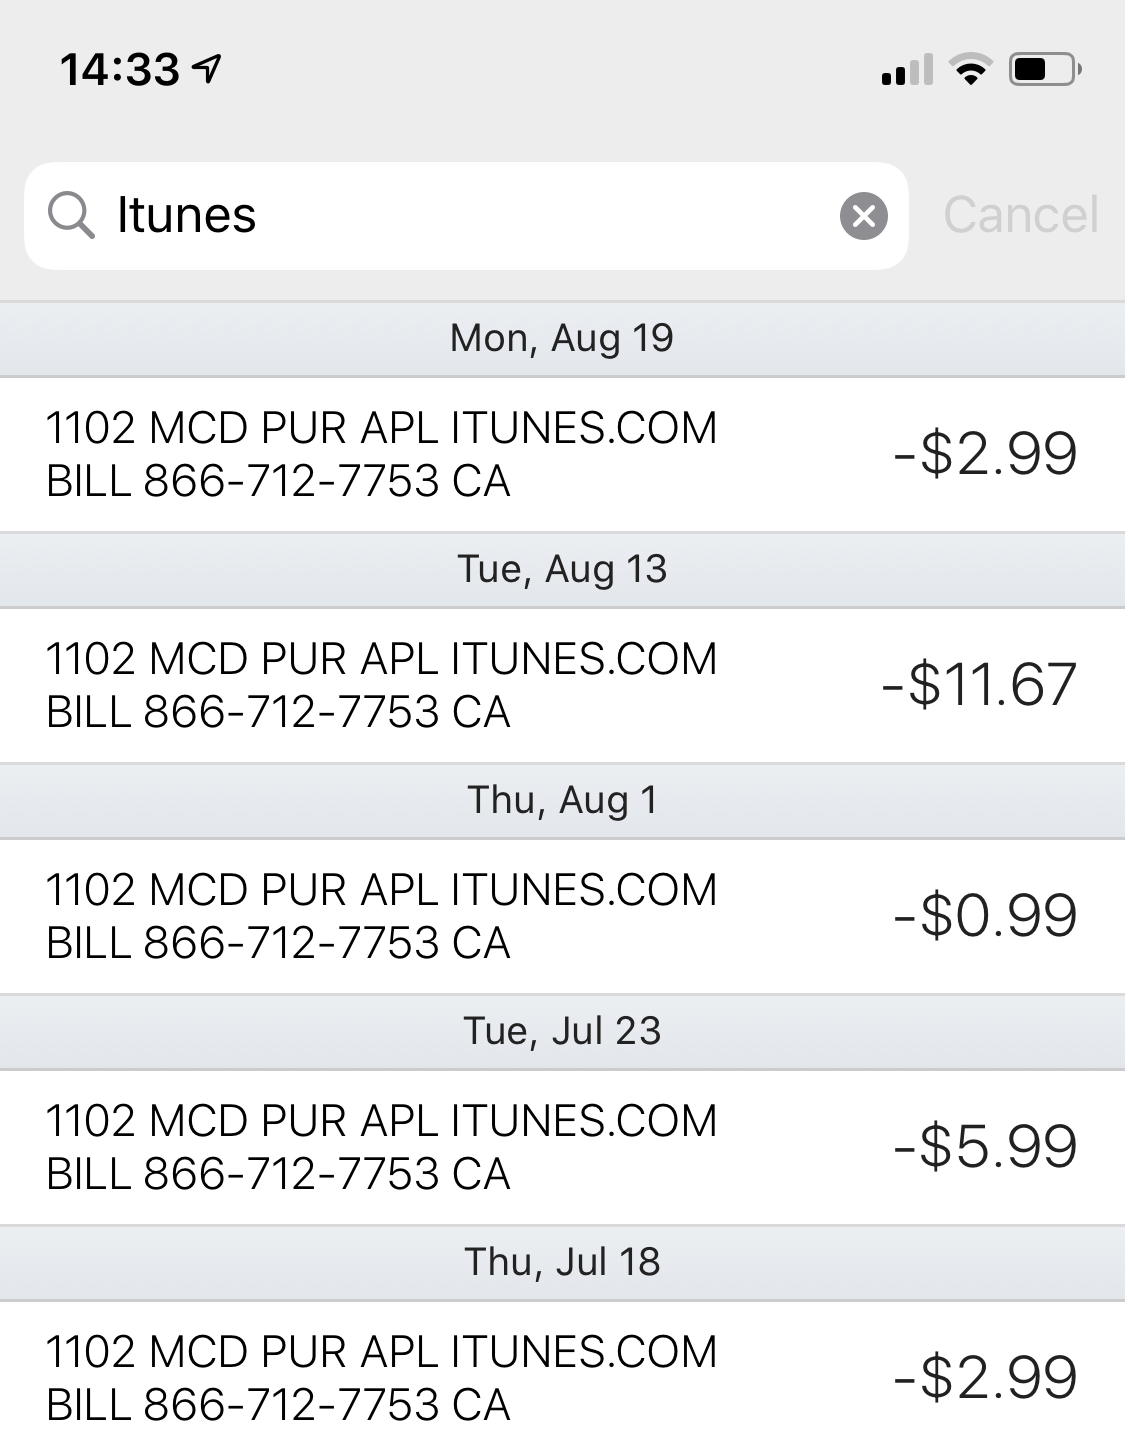 How to contact itunes about charges